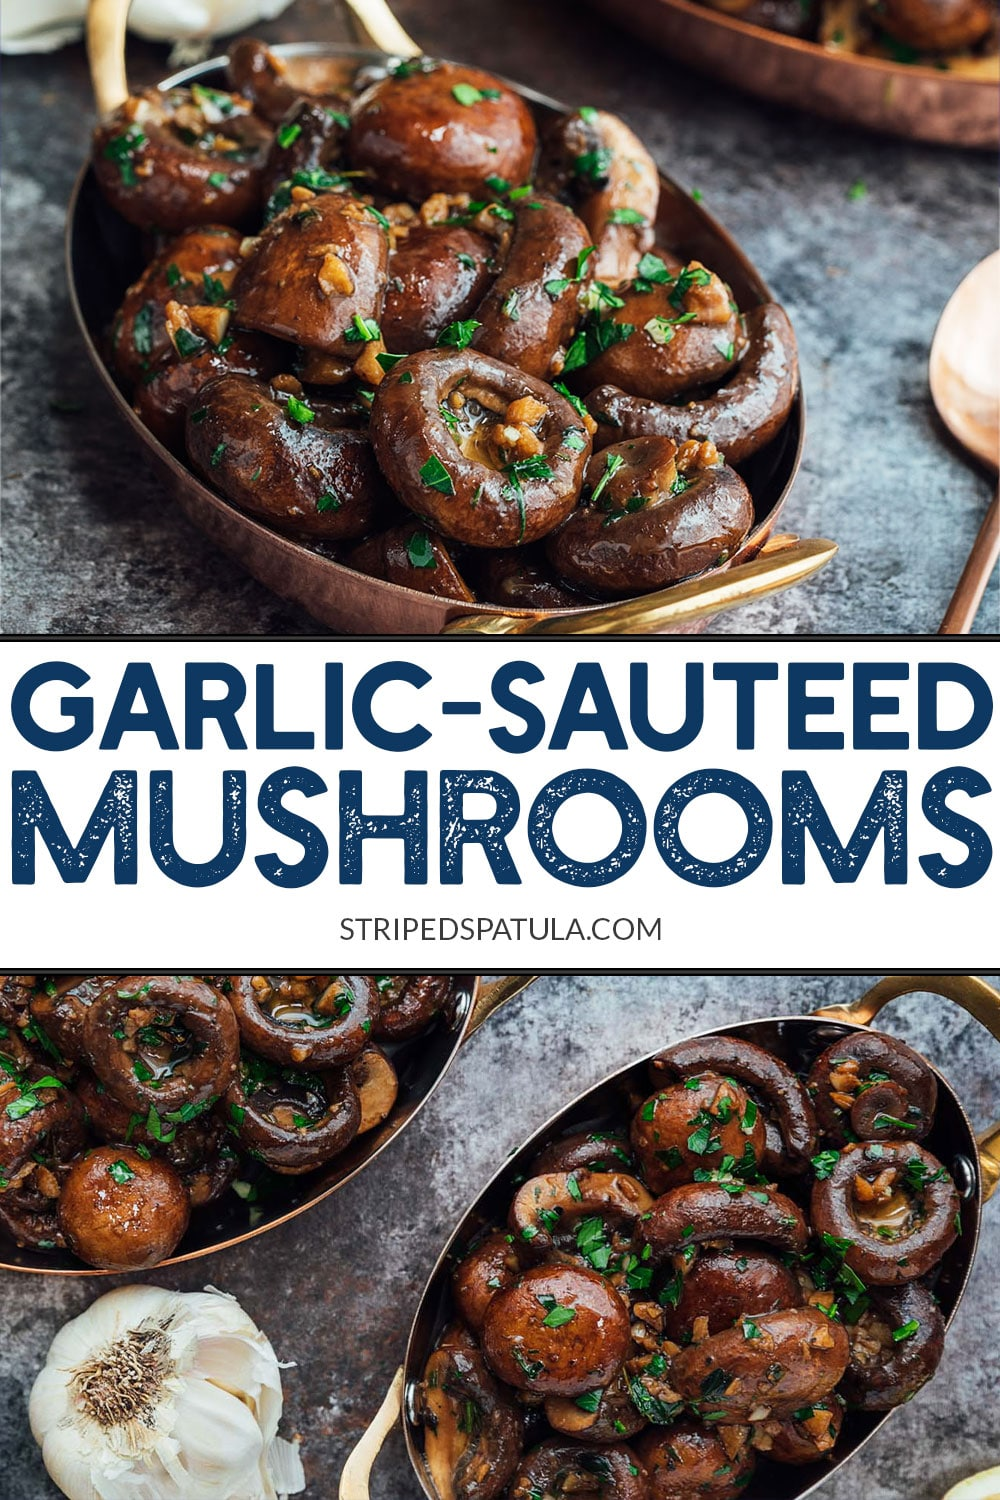 Love ordering garlicky, buttery sautéed mushrooms as a side for steak at restaurants? They're easy to make at home! A splash of cognac and fresh lemon juice takes these mushrooms to the next level. #mushrooms #sidedish